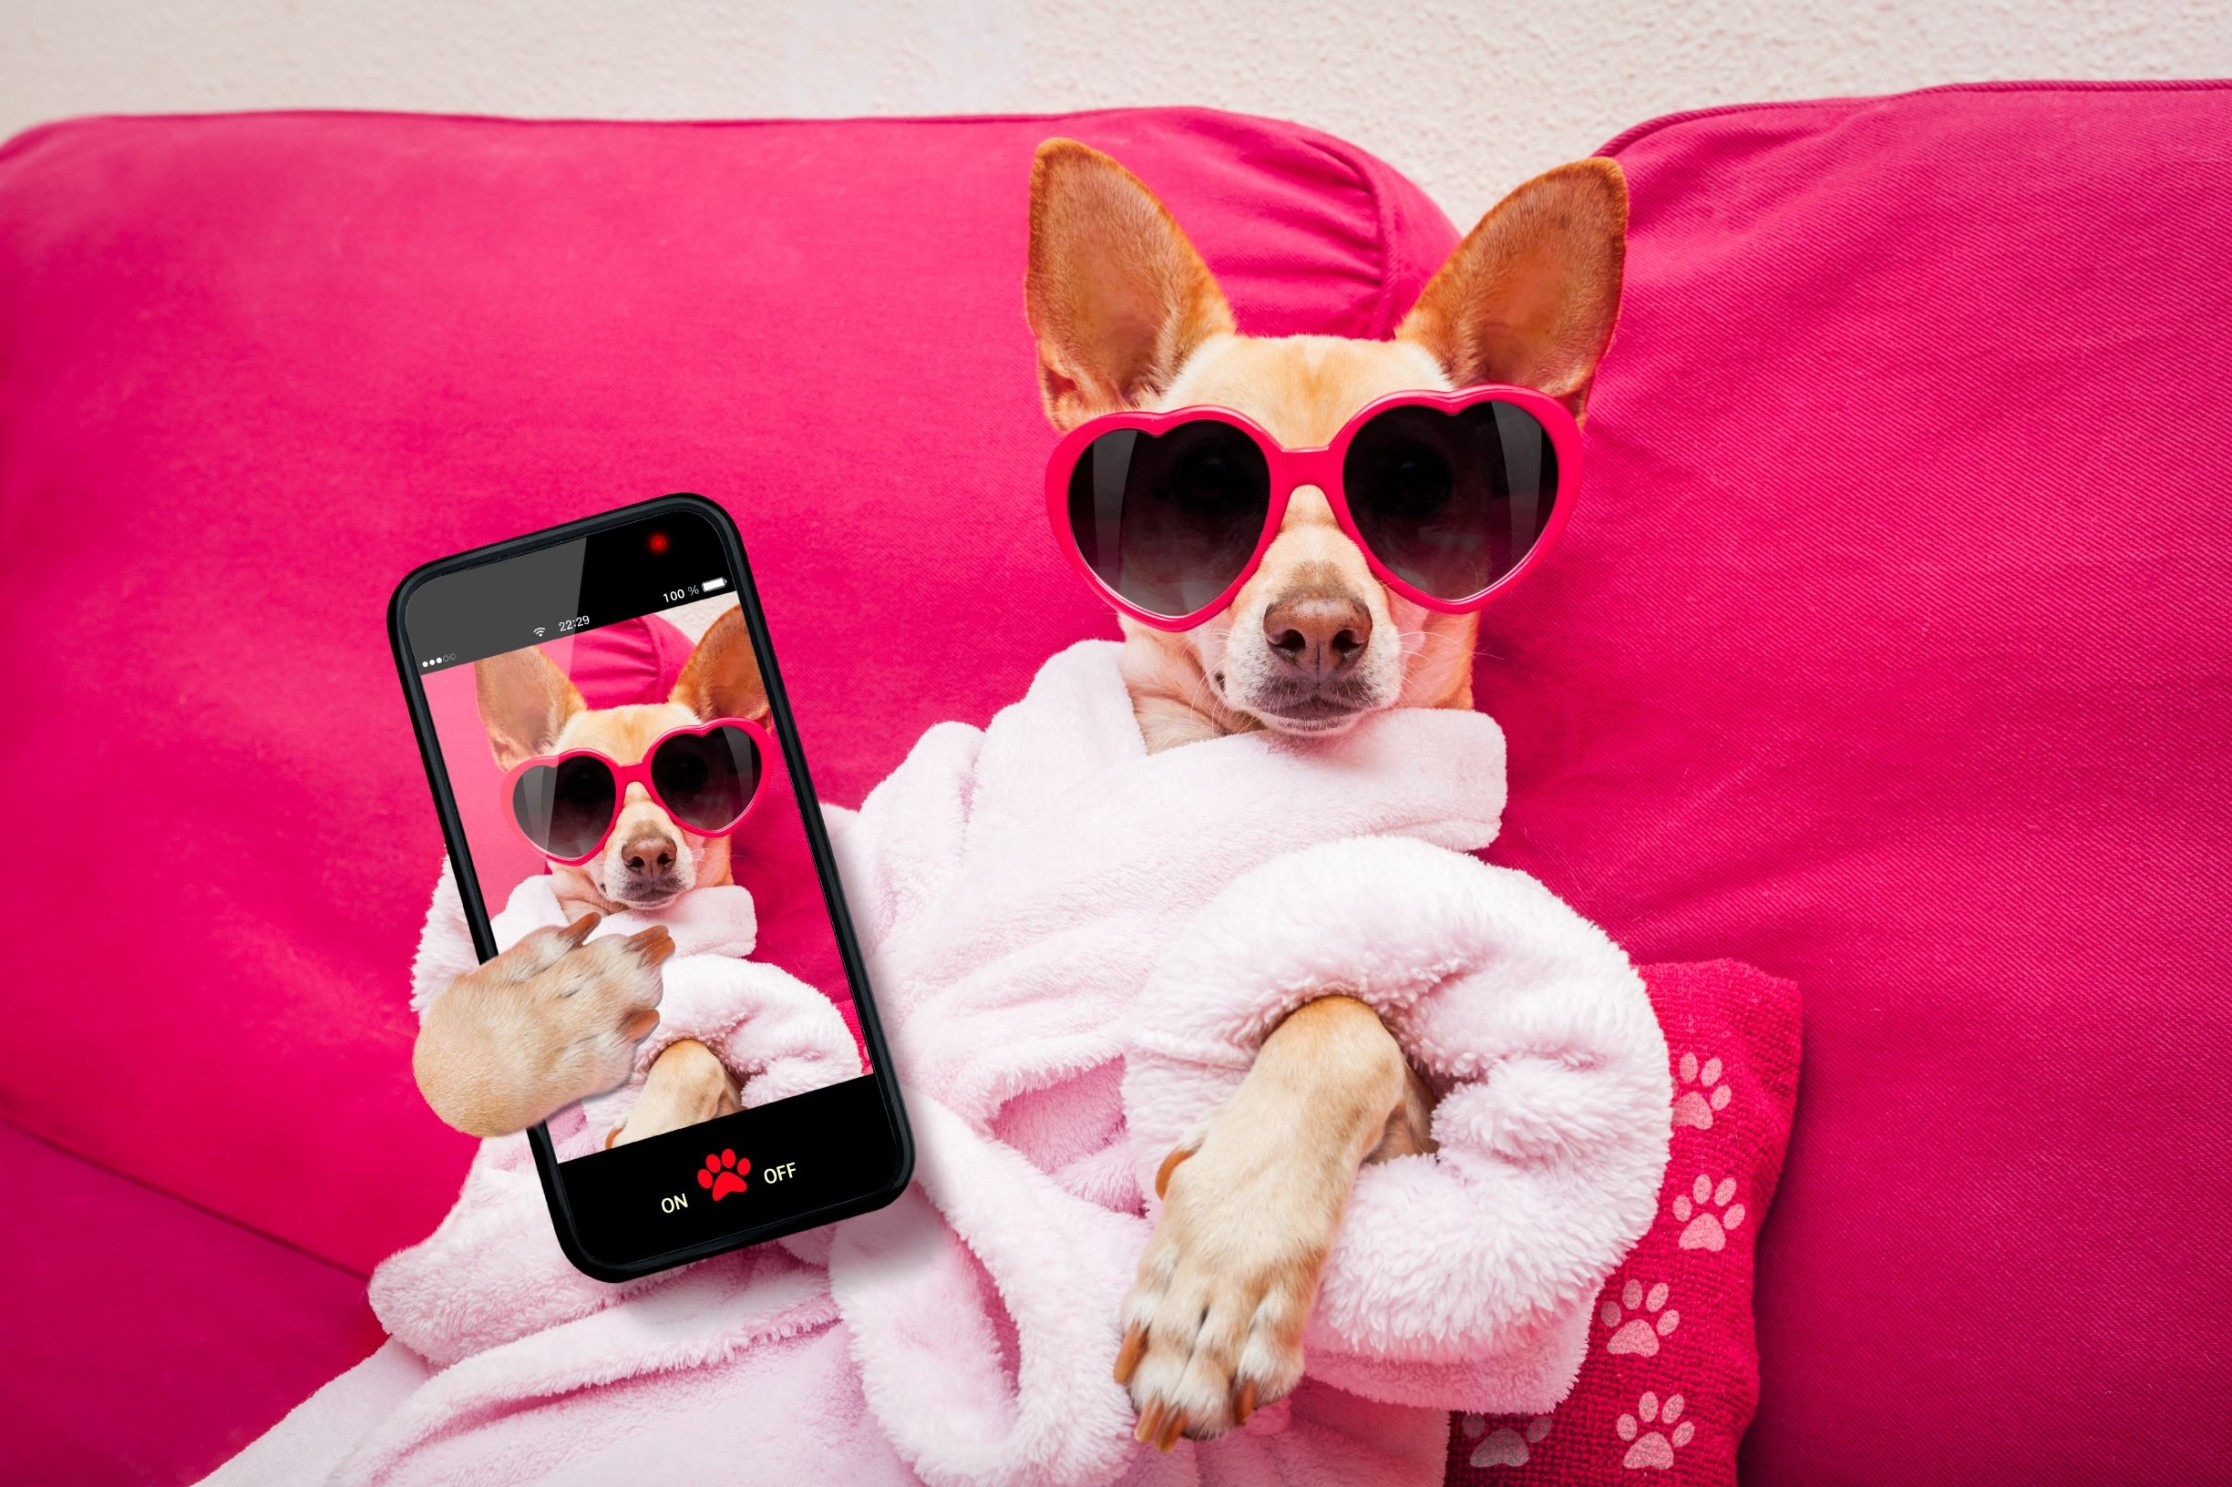 chihuahua relaxing on a pink pillow with a selfie